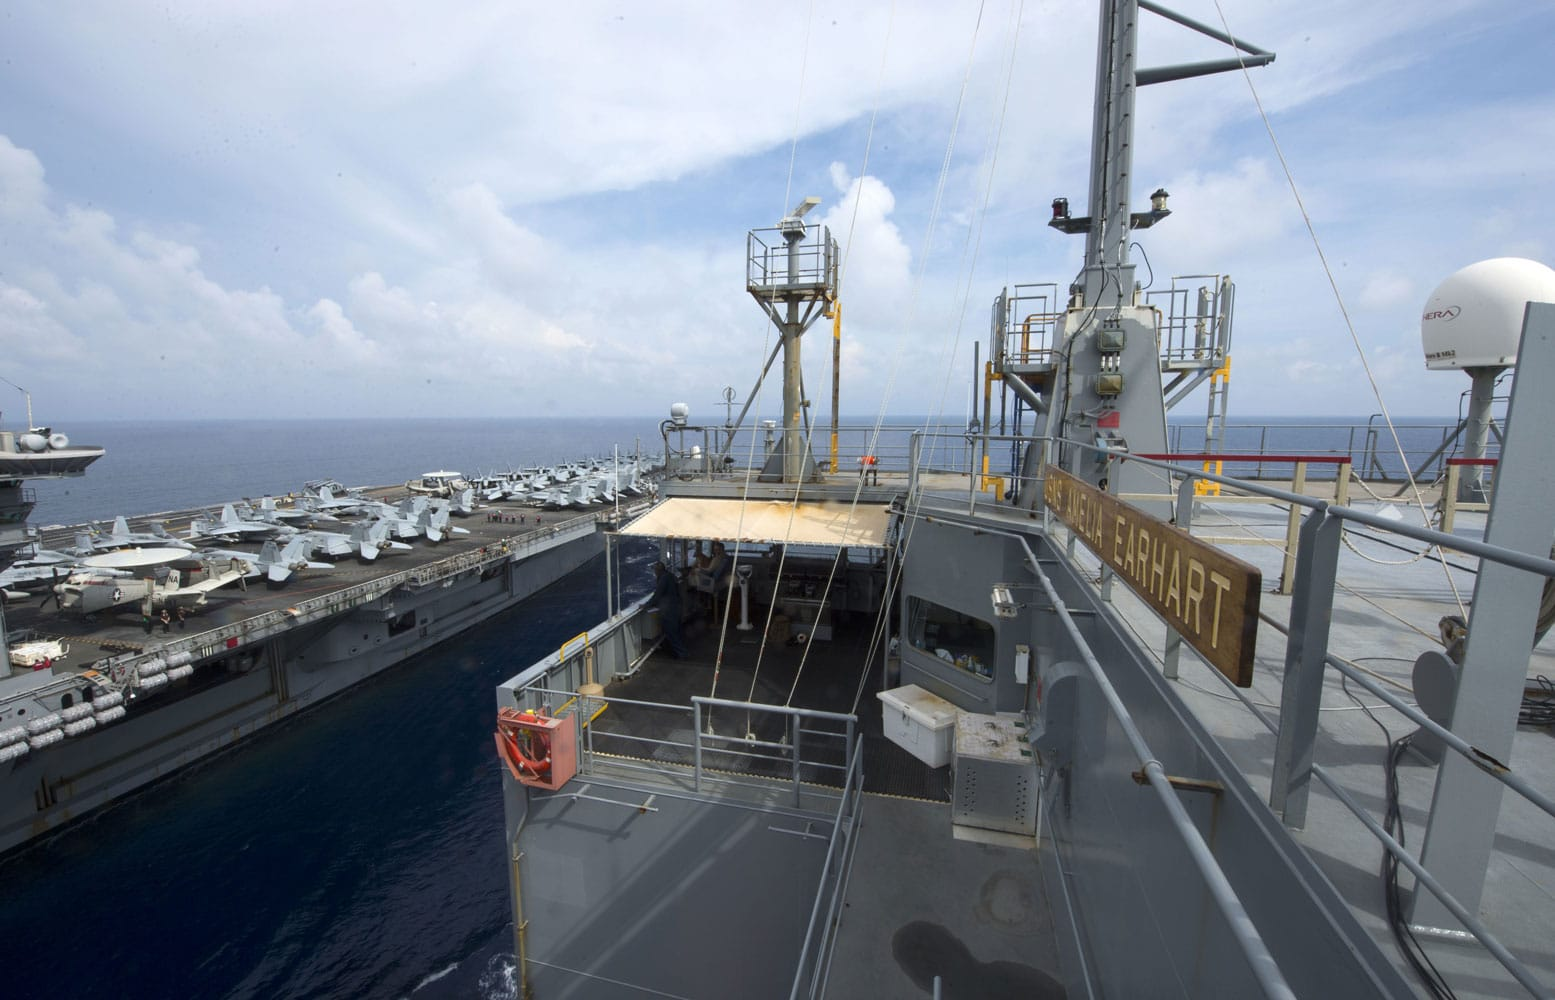 Military Sealift Command dry cargo and ammunition ship USNS Amelia Earhart maneuvers alongside USS Theodore Roosevelt during a replenishment at sea in the Western Pacific. Amelia Earhart aids the U.S. Navy mission by delivering food, fuel and supplies to Navy vessels, thus extending the Navy vessel's ability to stay at sea.